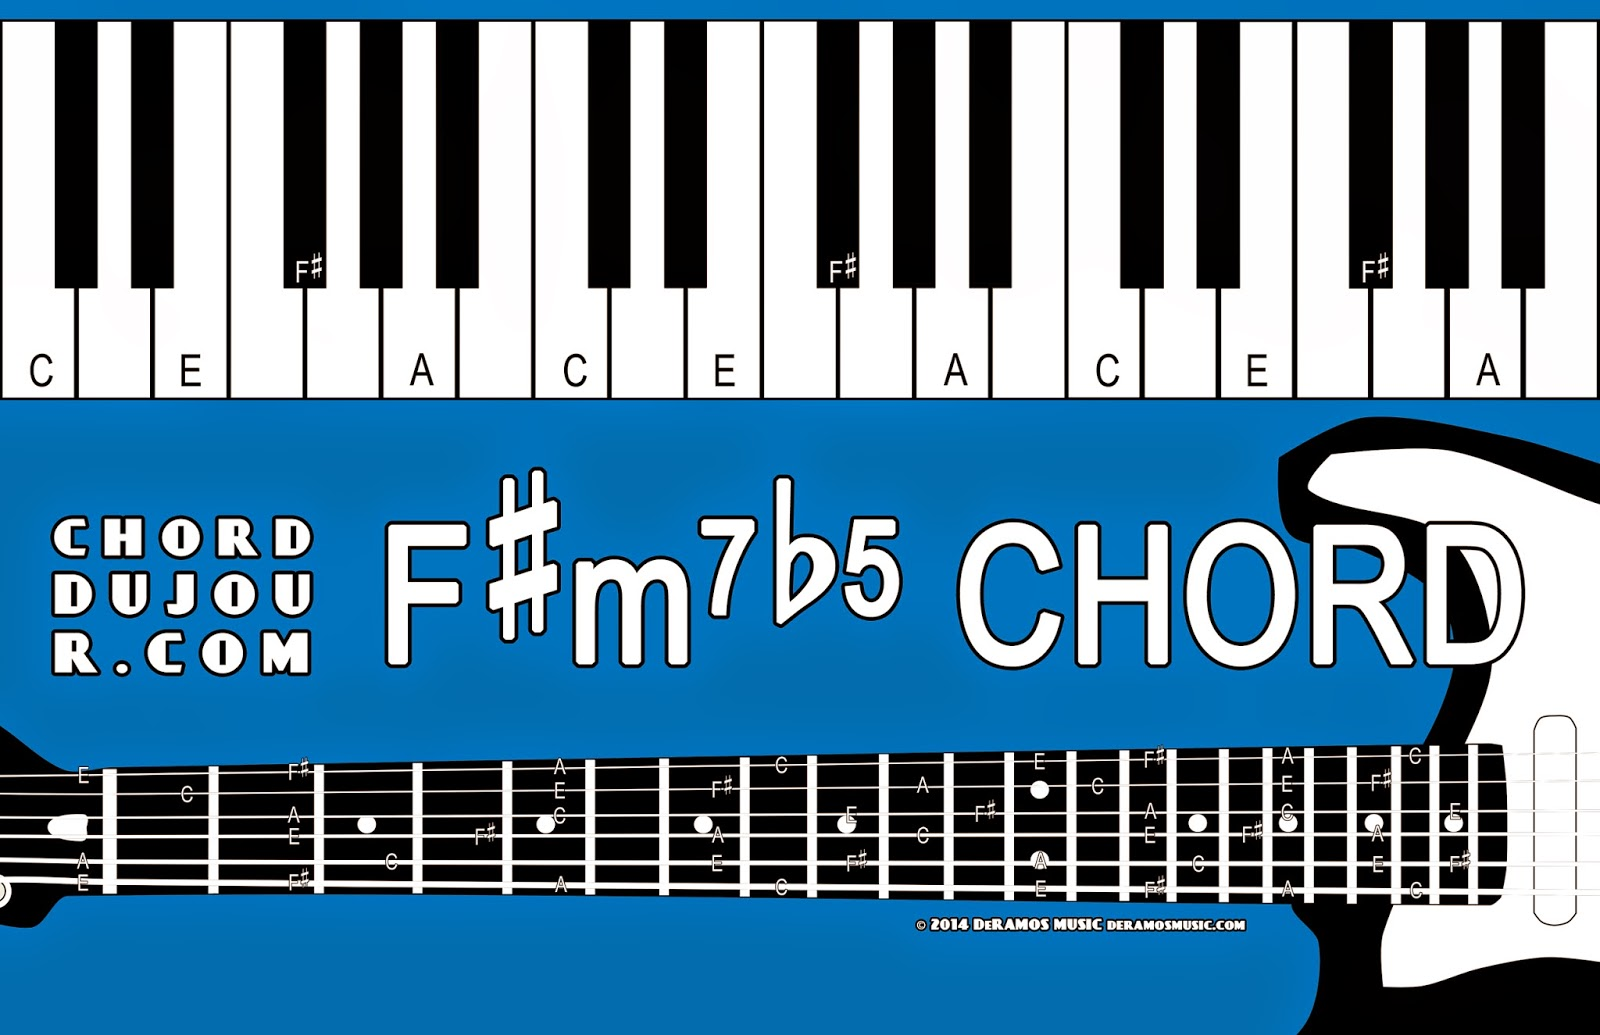 Chord du jour dictionary fm7b5 chord fm7b5 is an f sharp diminished triad with a minor 7th e note this chord is compatible with the f locrian mode hexwebz Gallery